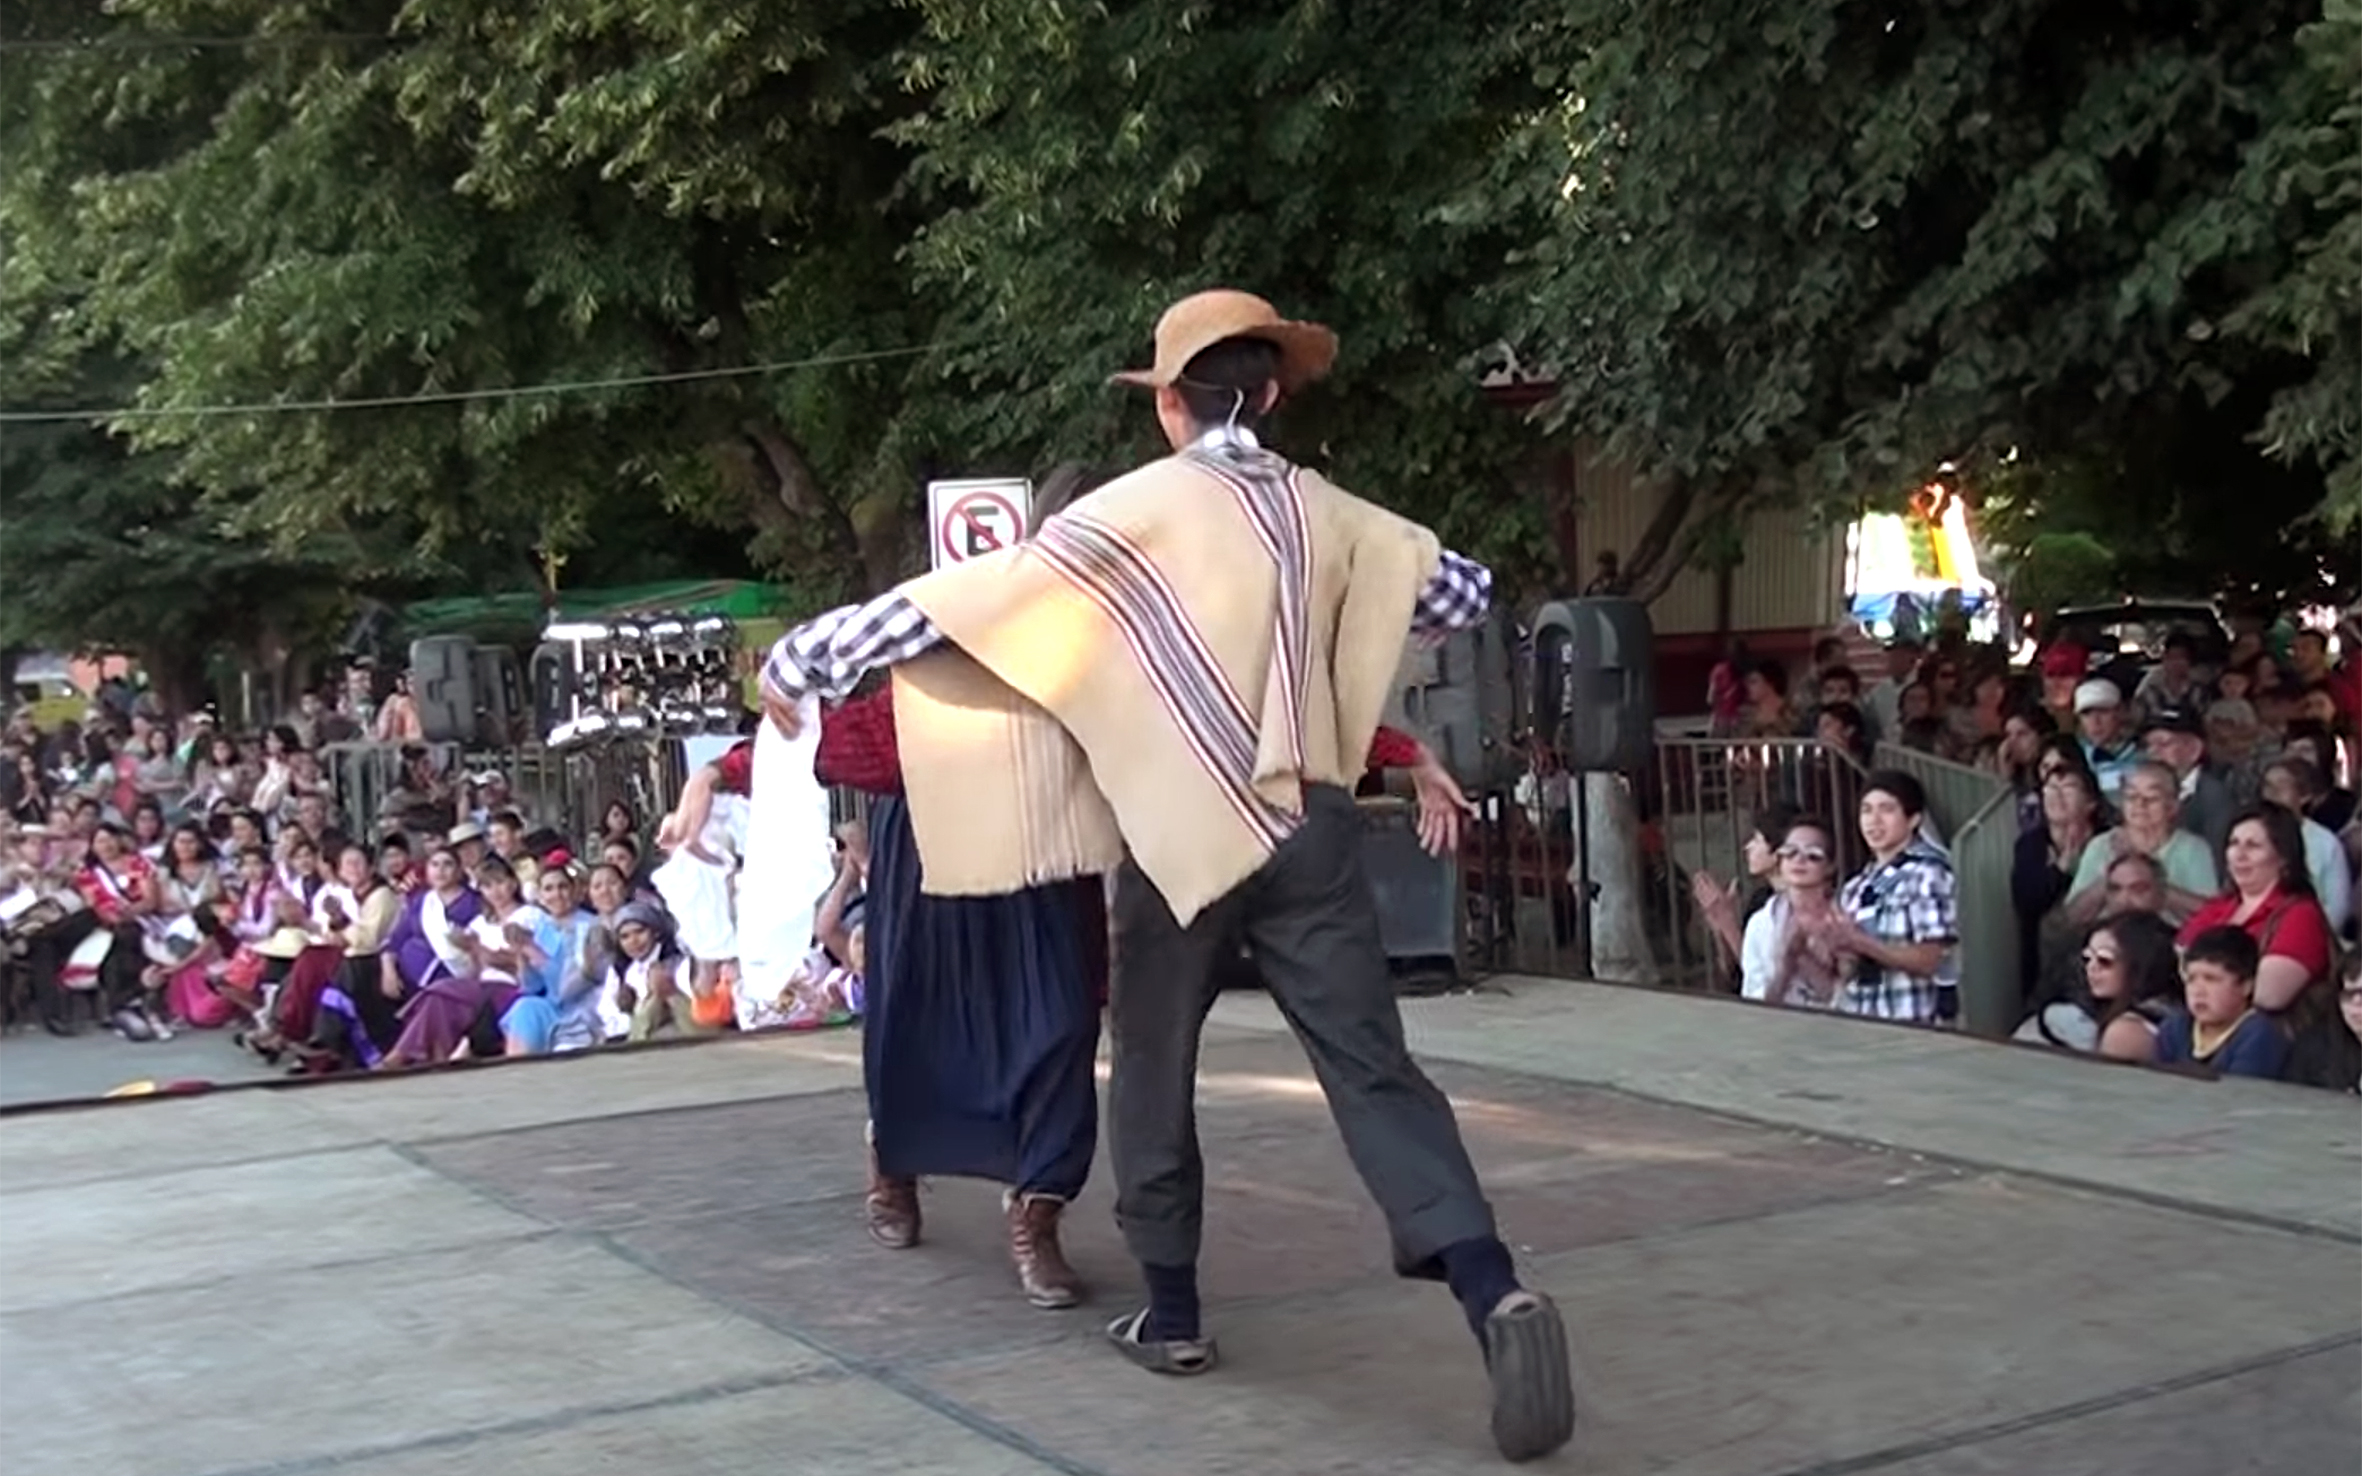 """684.Pequén / Chile - Pequén is a Chilean folkloric dance of popular roots, danced in different ways, according to its region of origin. There are two versions of the dance: Pequén Gañan, originally from Chiloé, and Pequén Campesino, danced in the central area. It is classified among the """"zoomorphic dances"""